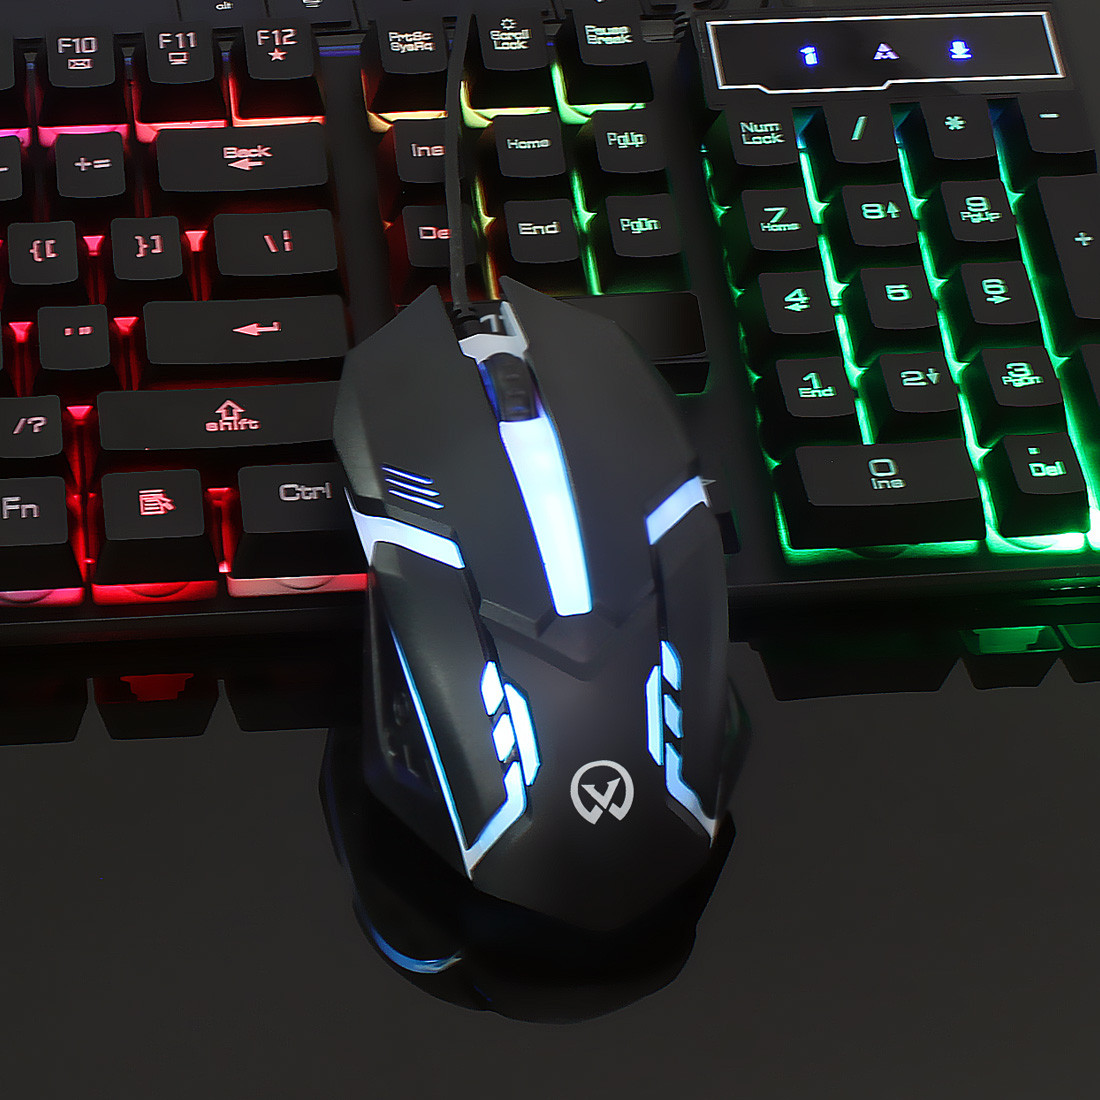 Mouse Raton Ordenador Black Wired Mouse Dpi Gaming 4 button Gamer Usb Mice Professional Mice For PC Laptop Computer Mouse 19A19